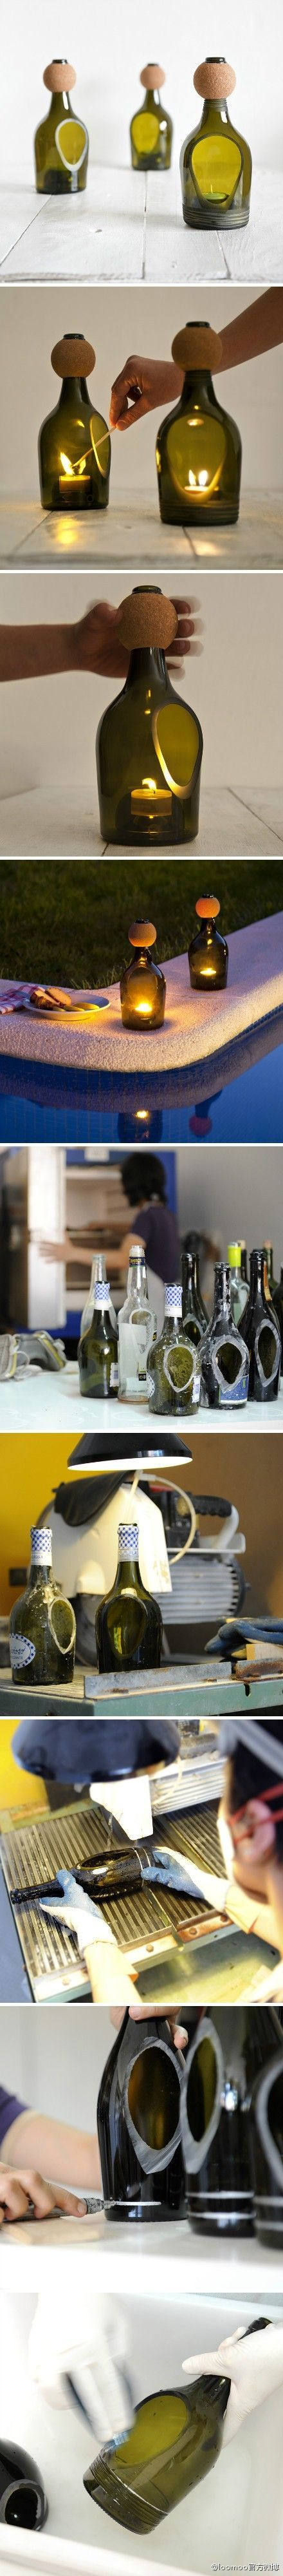 44 Simple DIY Wine Bottles | Ideias com garrafas de vinho